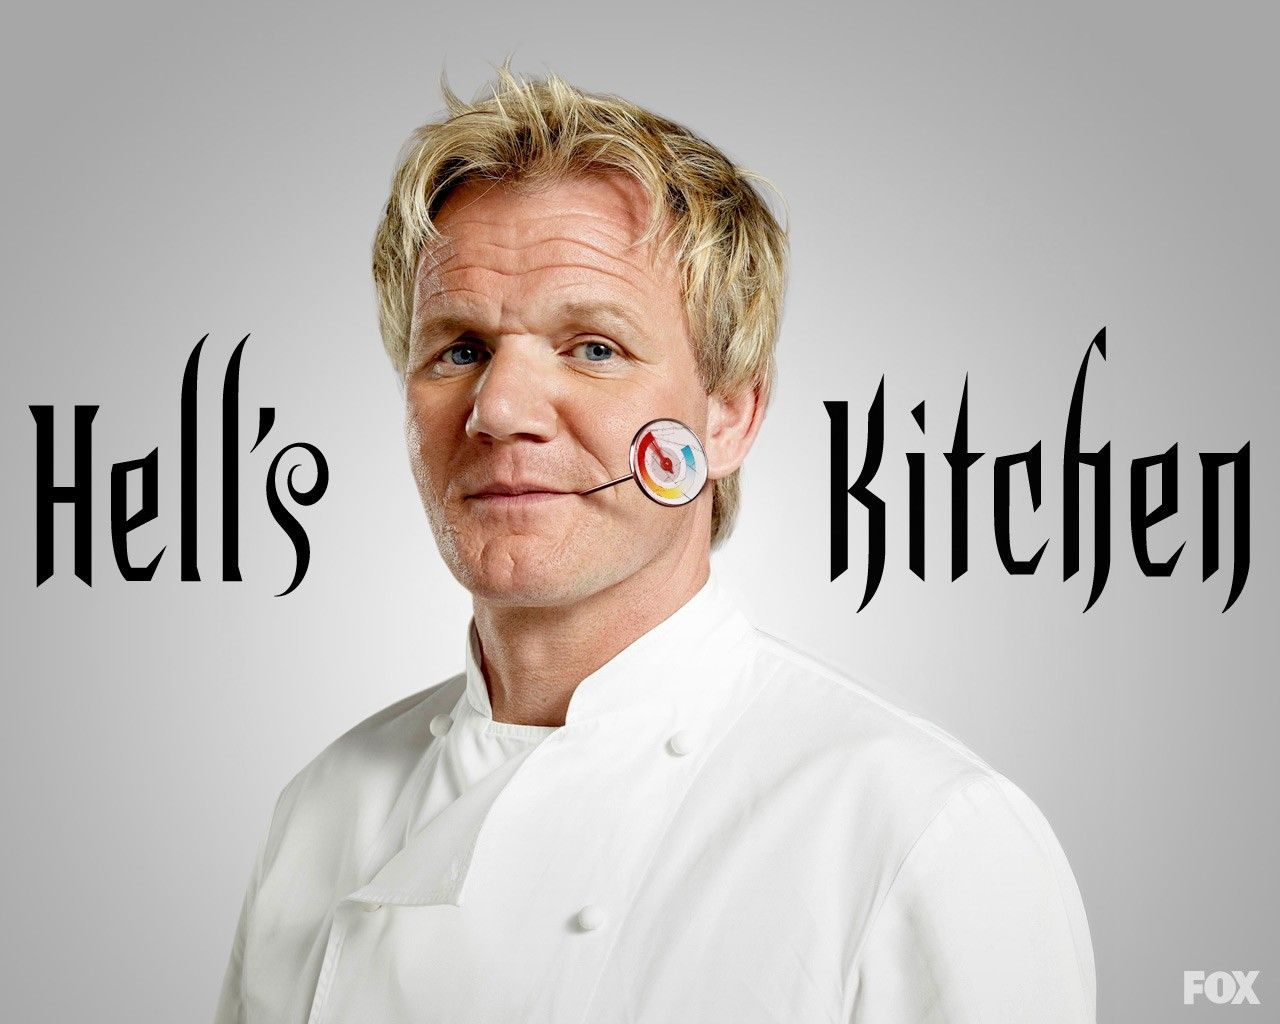 hell\'s kitchen | ... hell s kitchen wallpaper 20027719 size ...